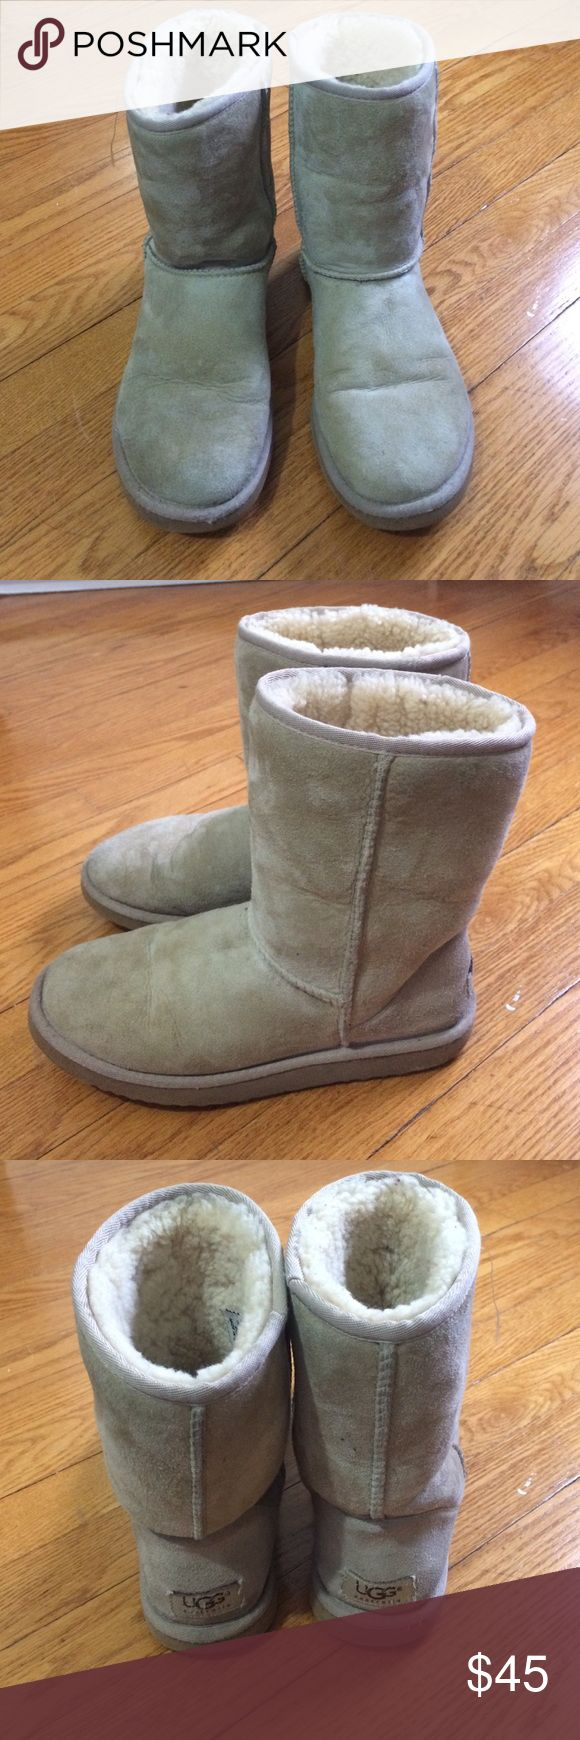 UGG Classic Short Sand Size 7 UGG Classic Short Sand Size 7 UGG Shoes Winter & Rain Boots